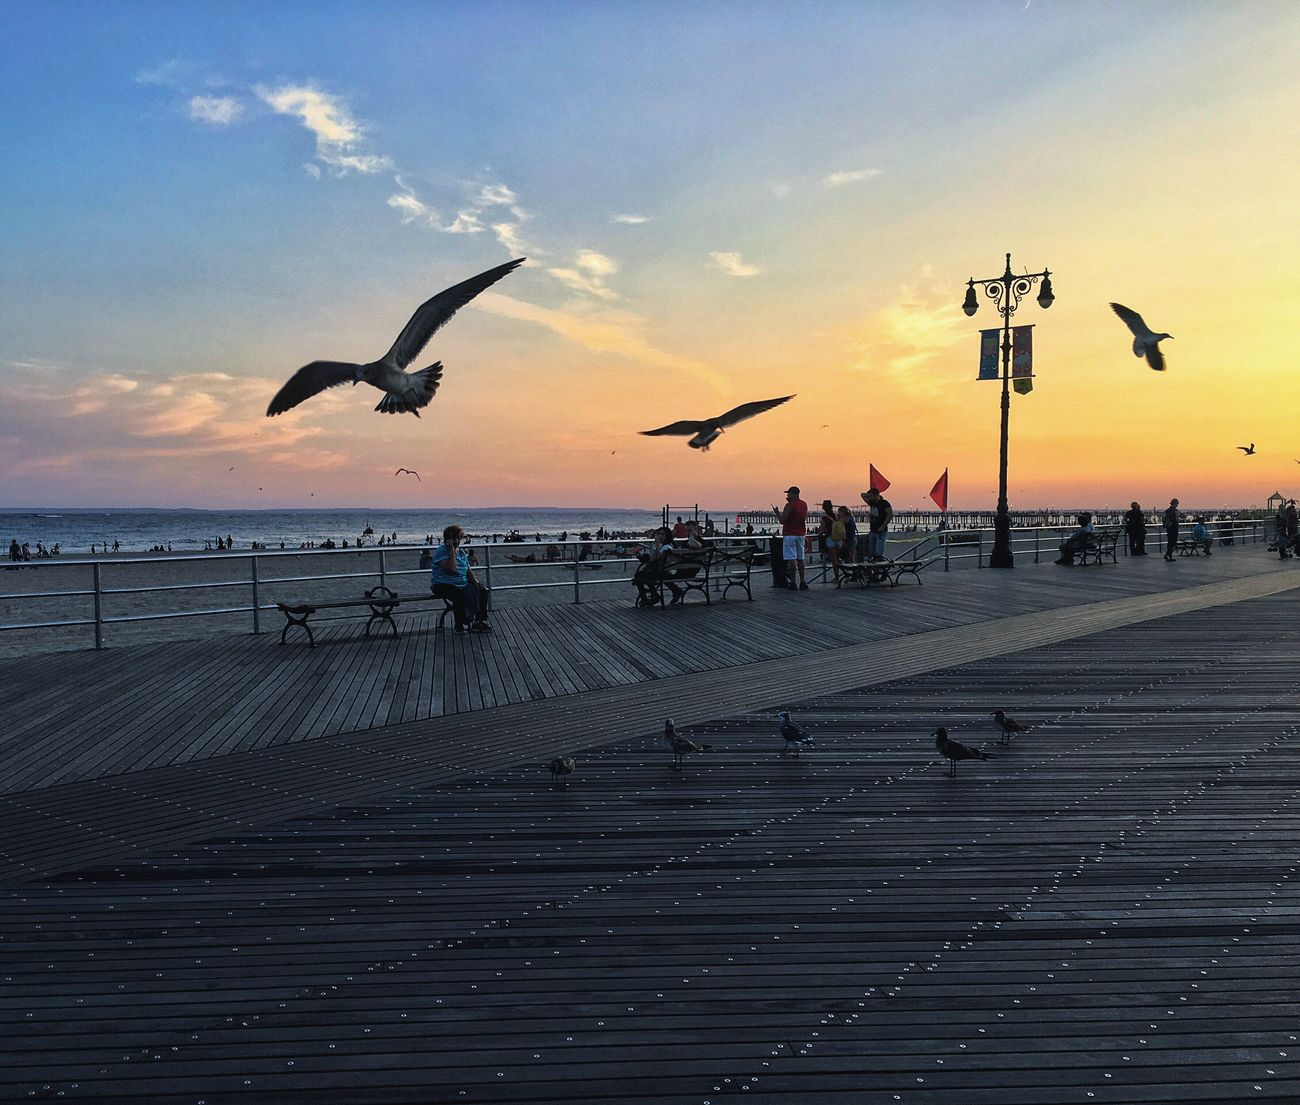 Battle Of The Cities New York New York City Coney Island Brighton Brighton Beach Sunset Beach Ocean Ocean View Bird Sky Pier View Tourism Vacation Good Times USA